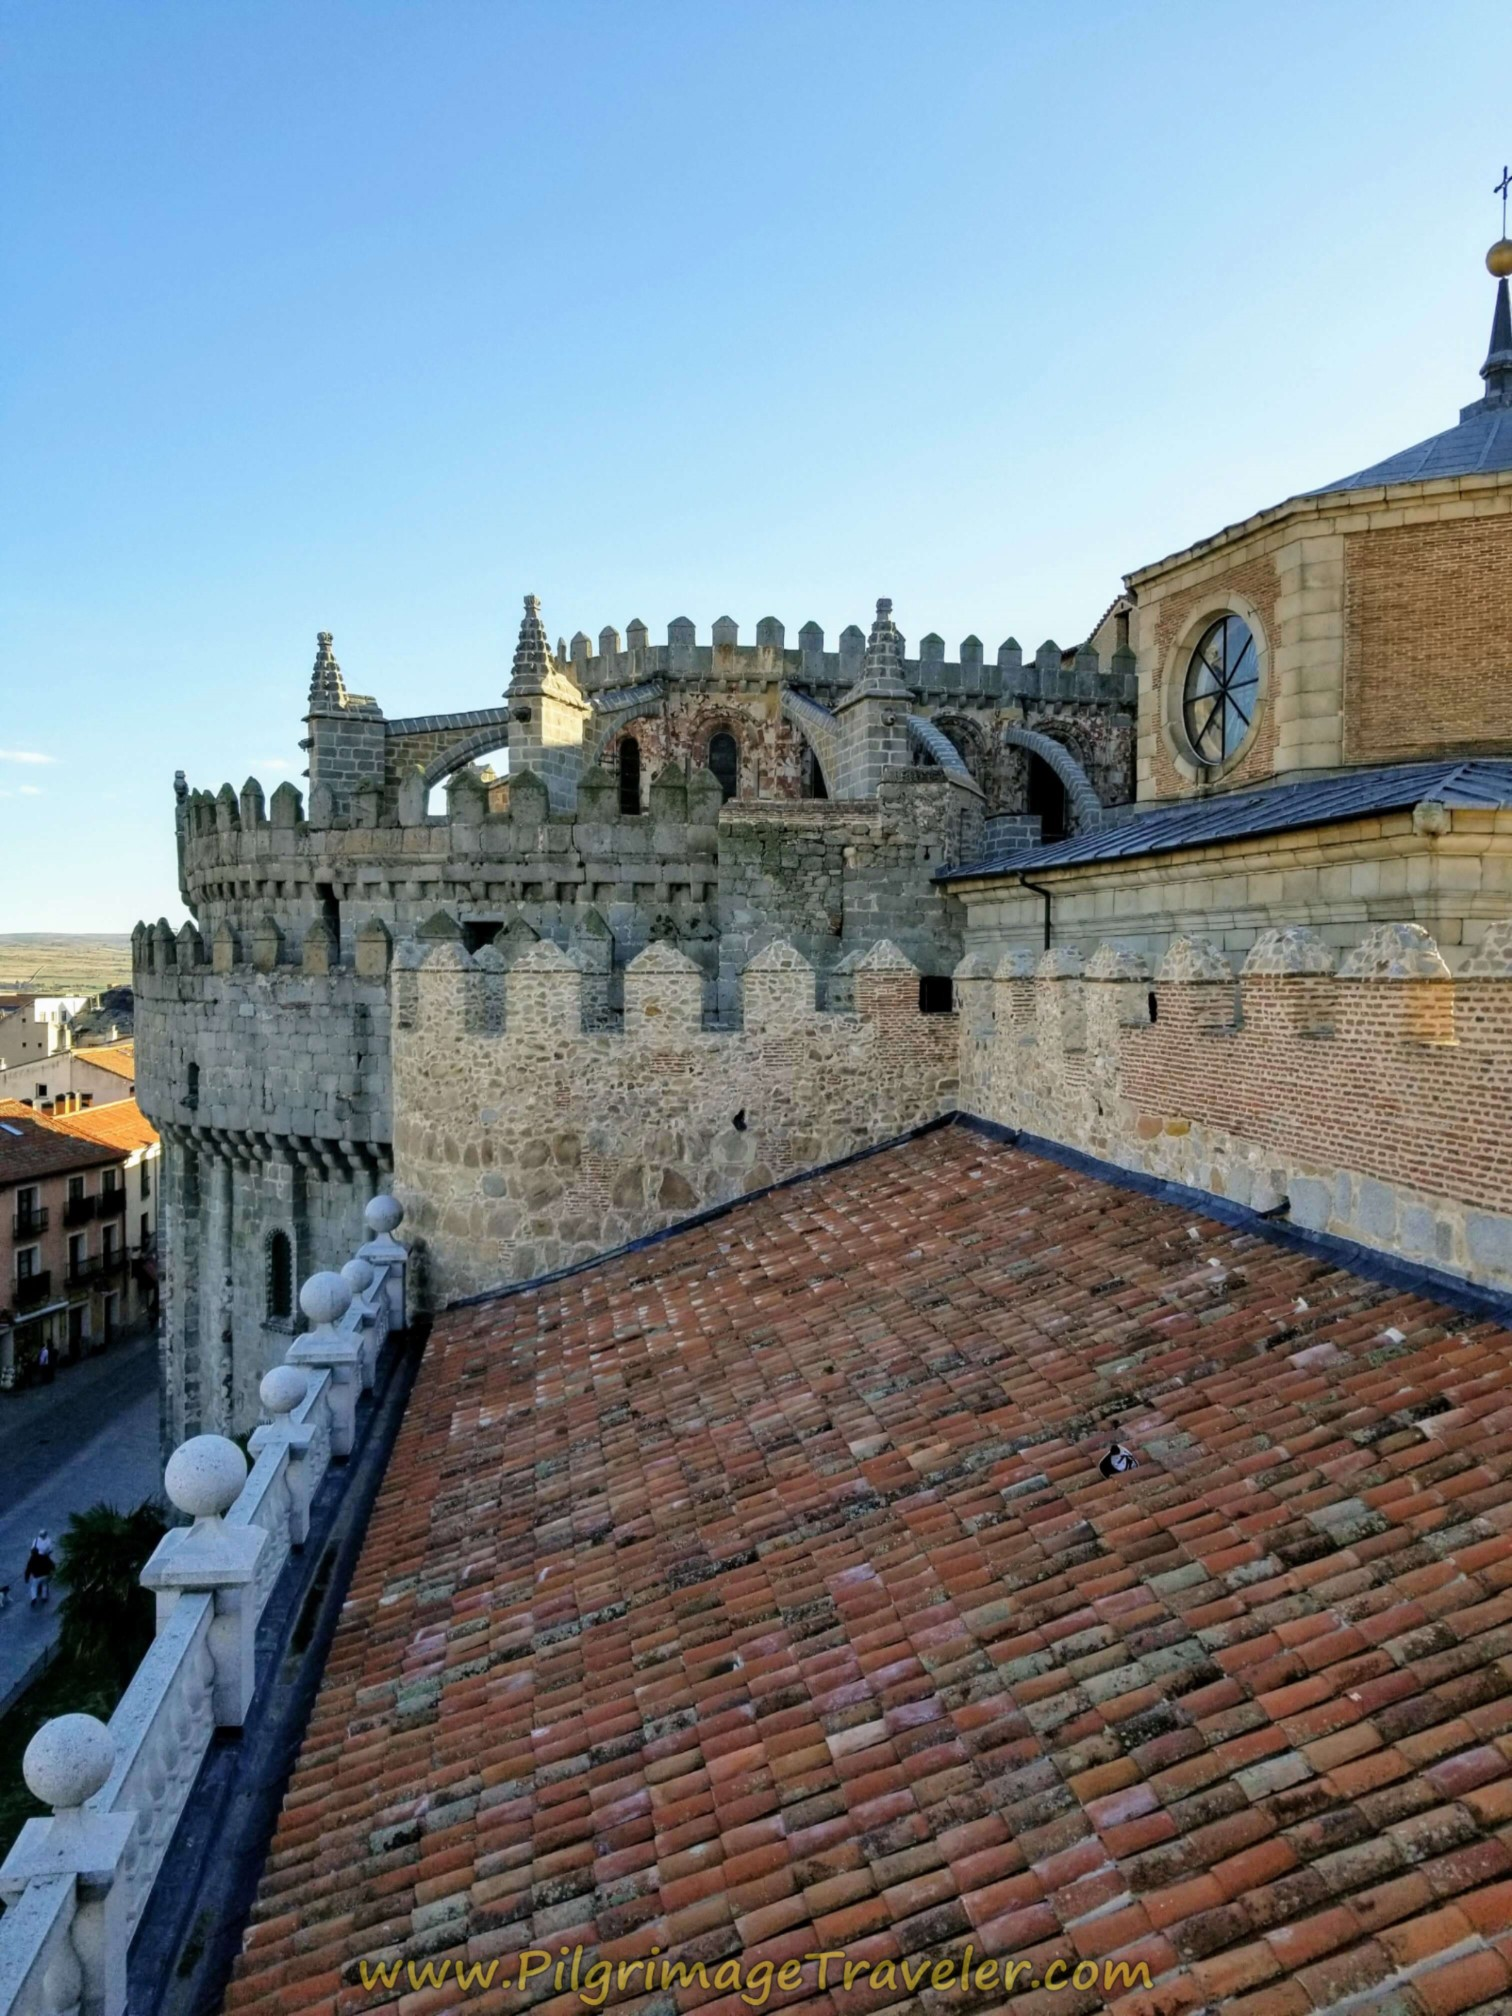 Views of the upper Cathedral apse from the east walls of Ávila.